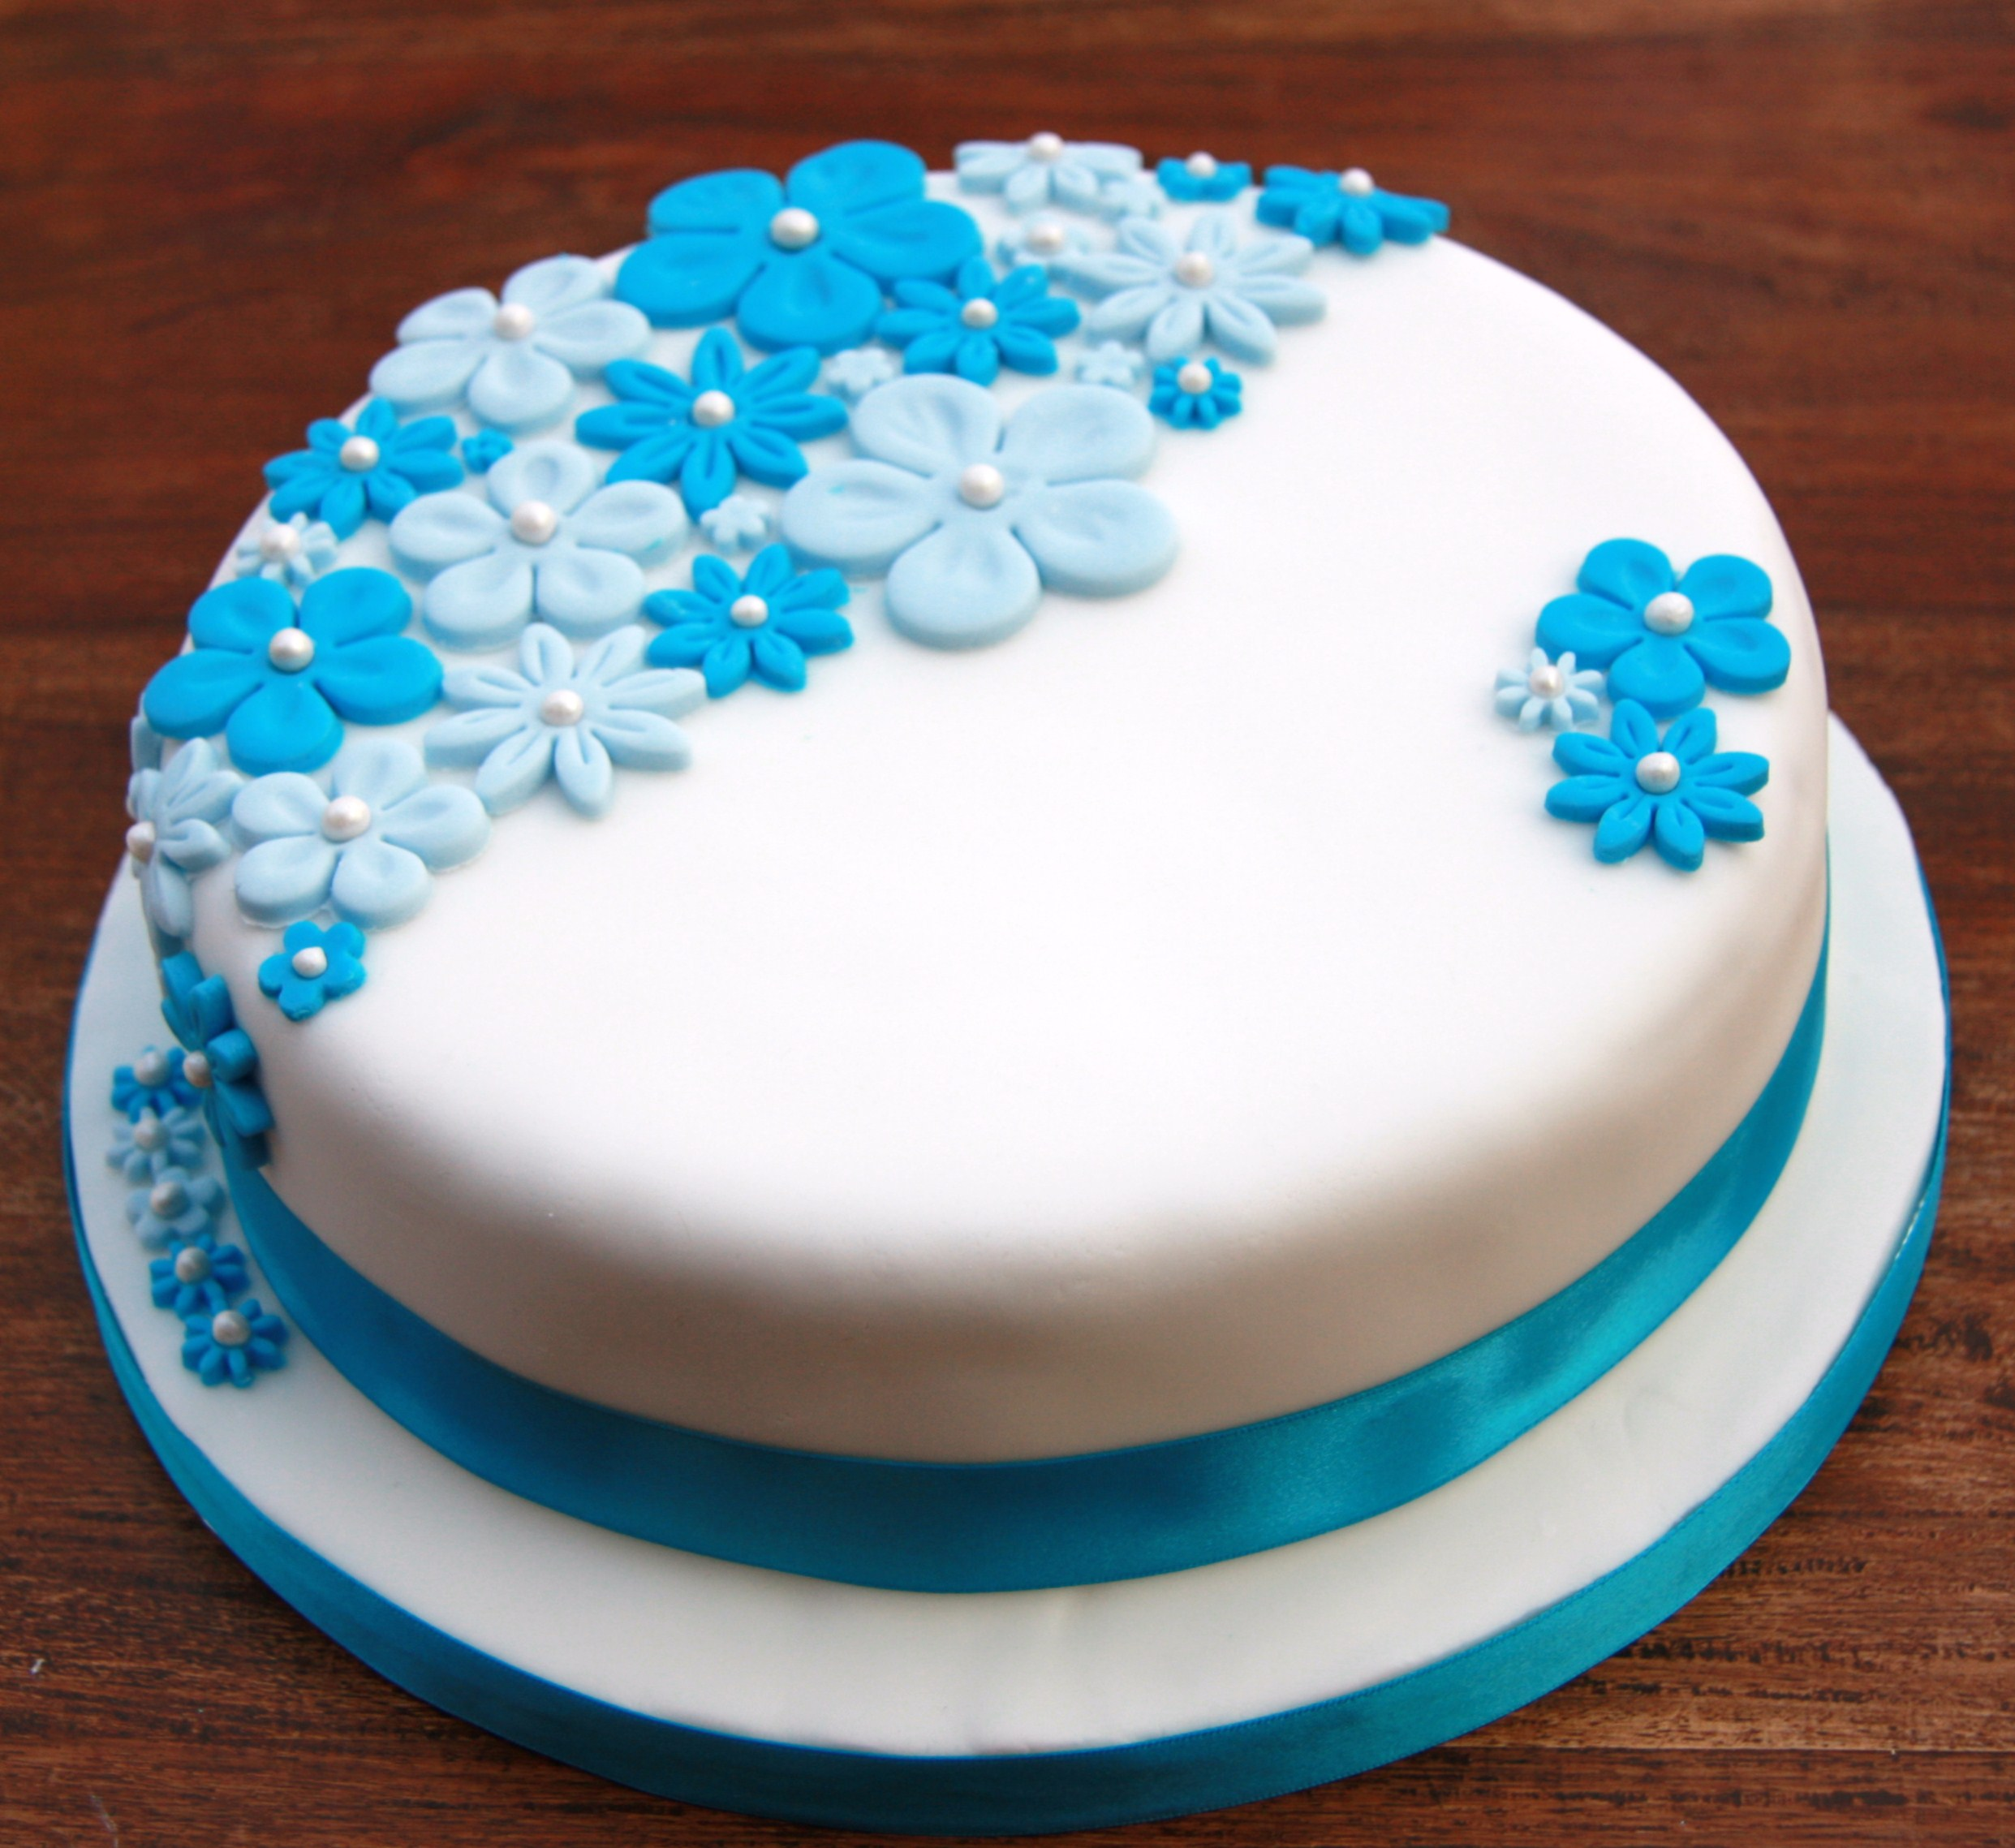 Birthday Cake Images Pic : Birthday Cake with Blue Flowers   lovinghomemade